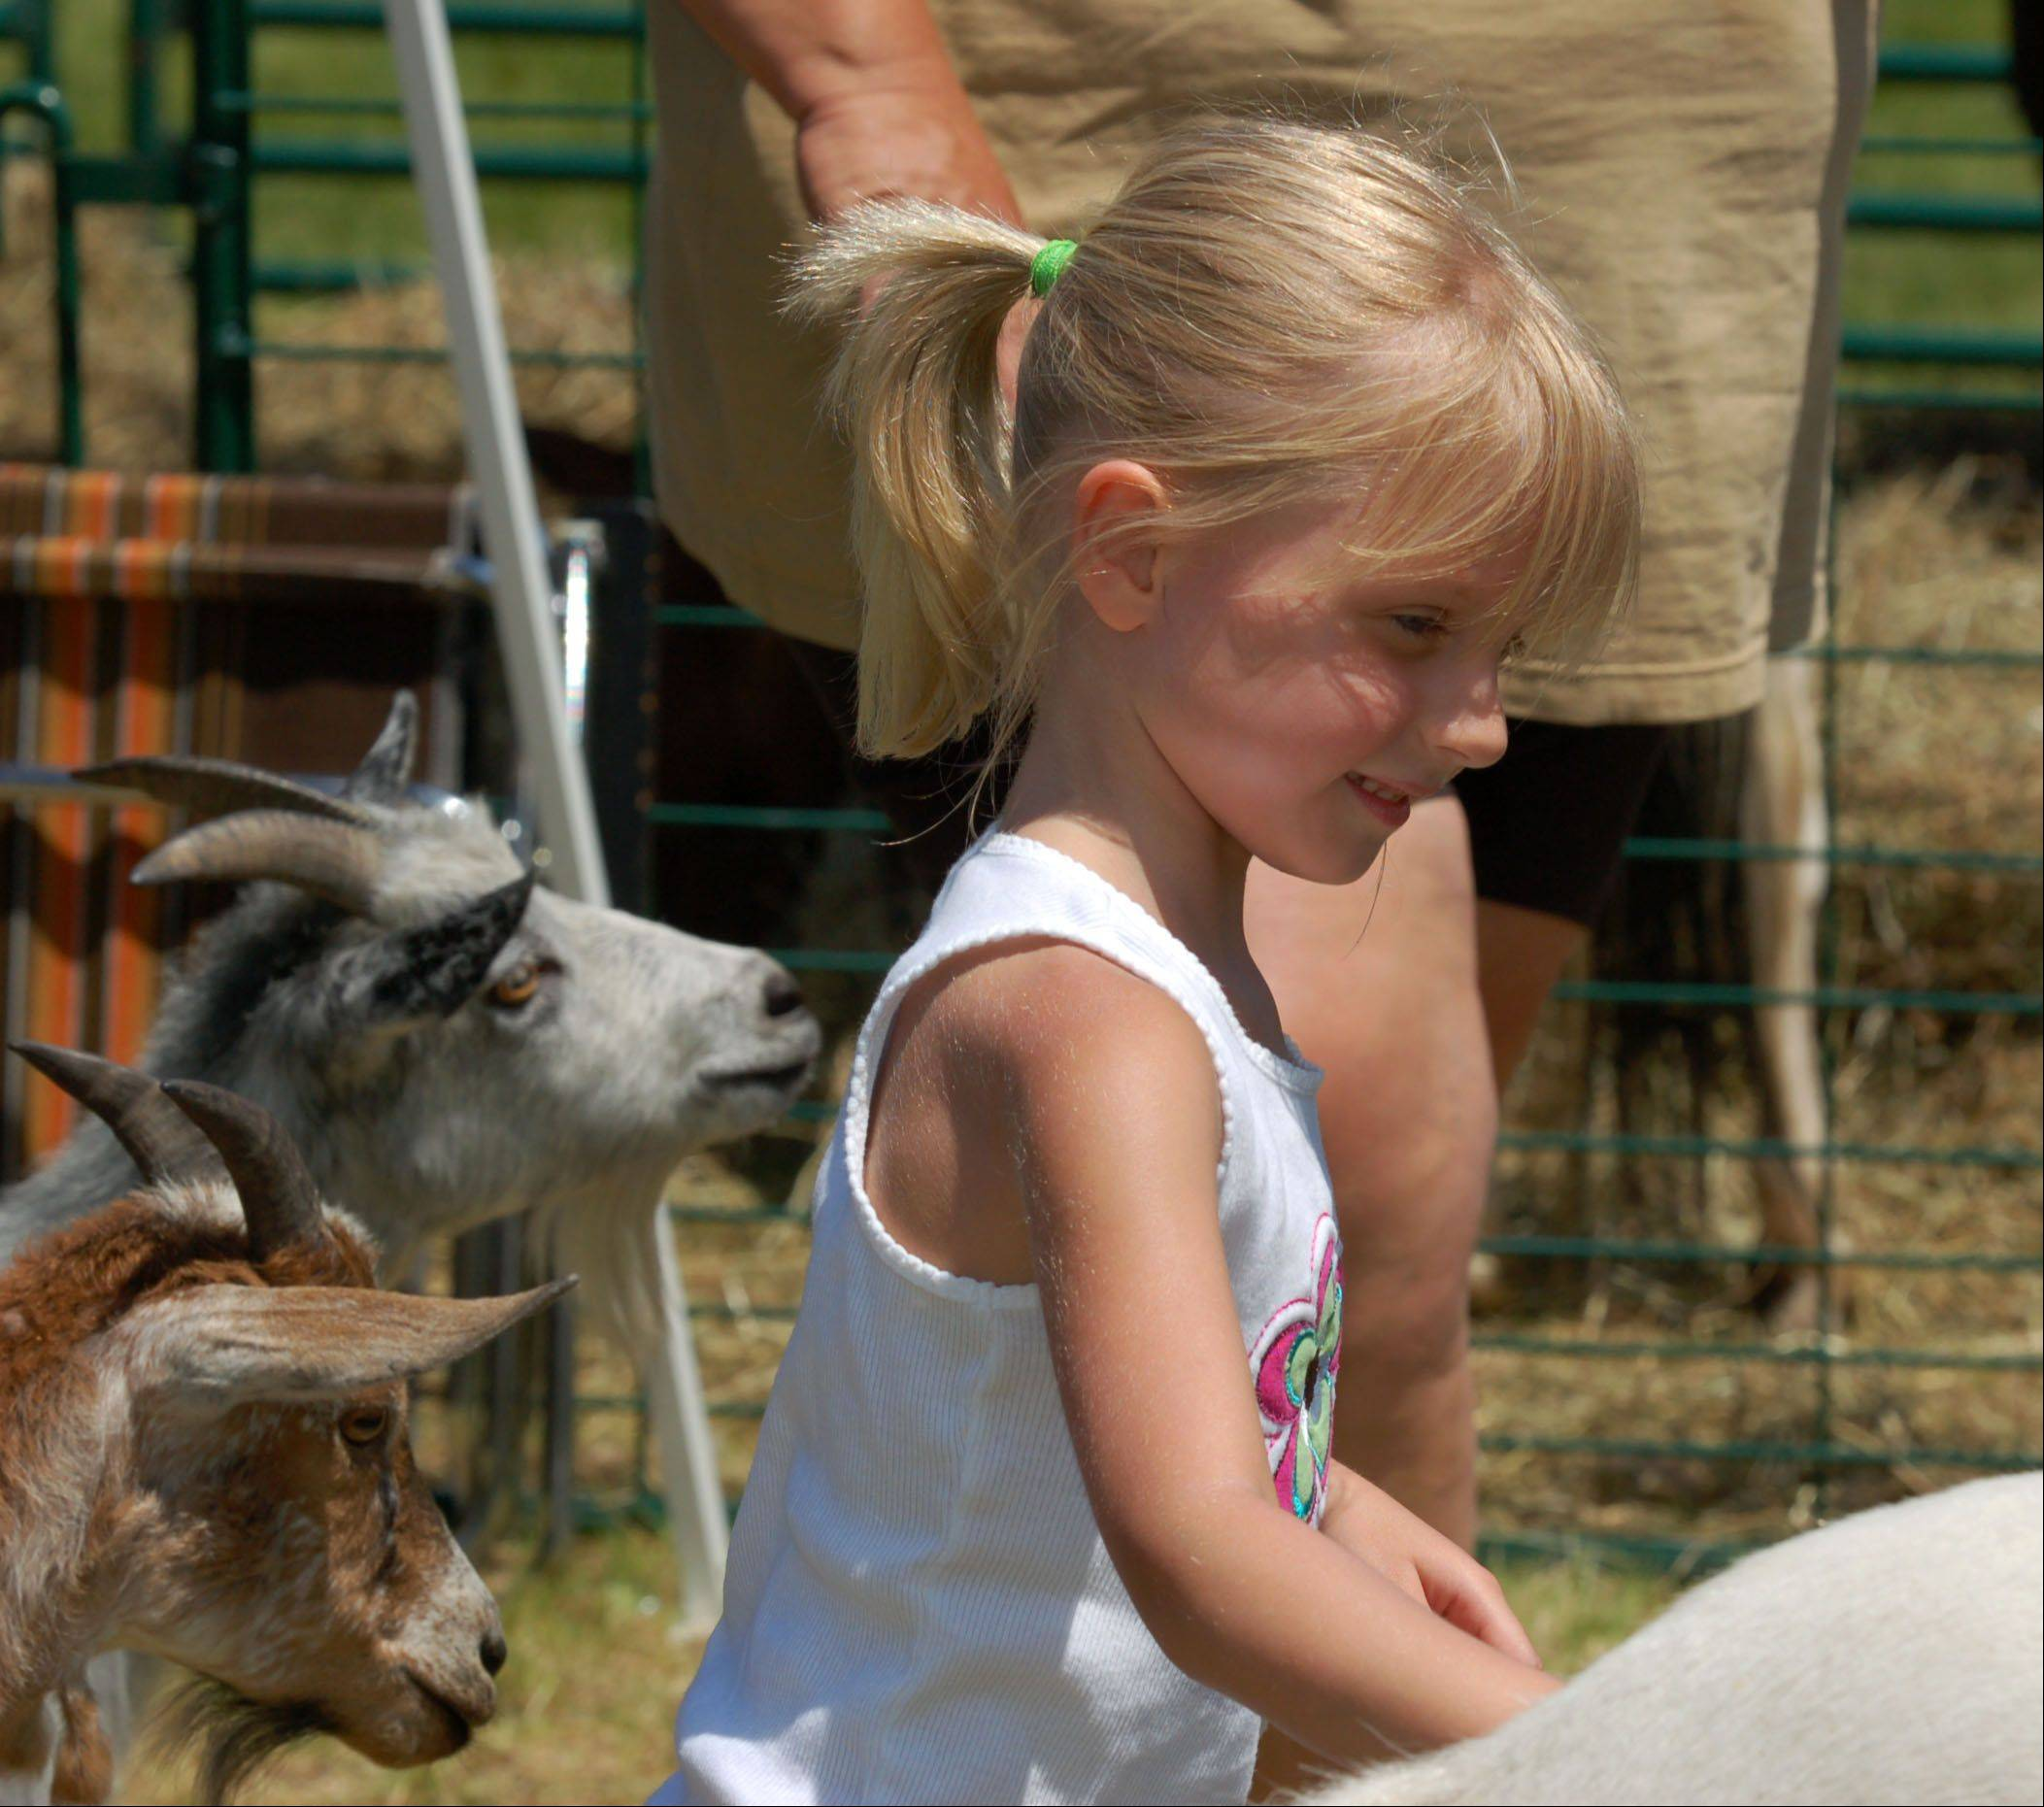 Ashlyn Pauwels, 5, of Carpentersville visits the petting zoo at last year's Gilberts Community Days. This year's festival is set for Thursday, May 31 through Sunday, June 3 in Town Center Park.